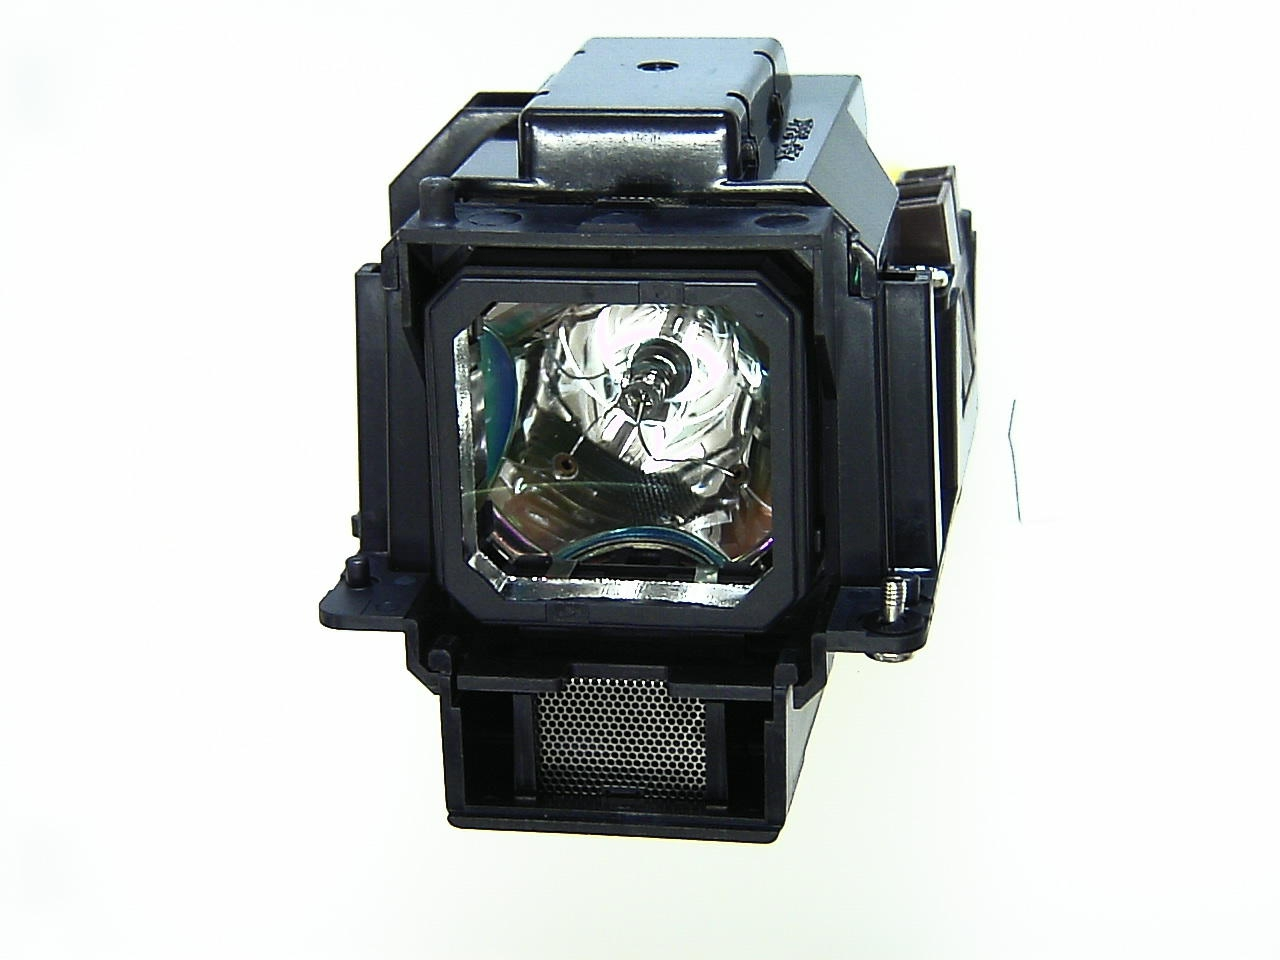 UTAX 11357021 Lamp Replacement